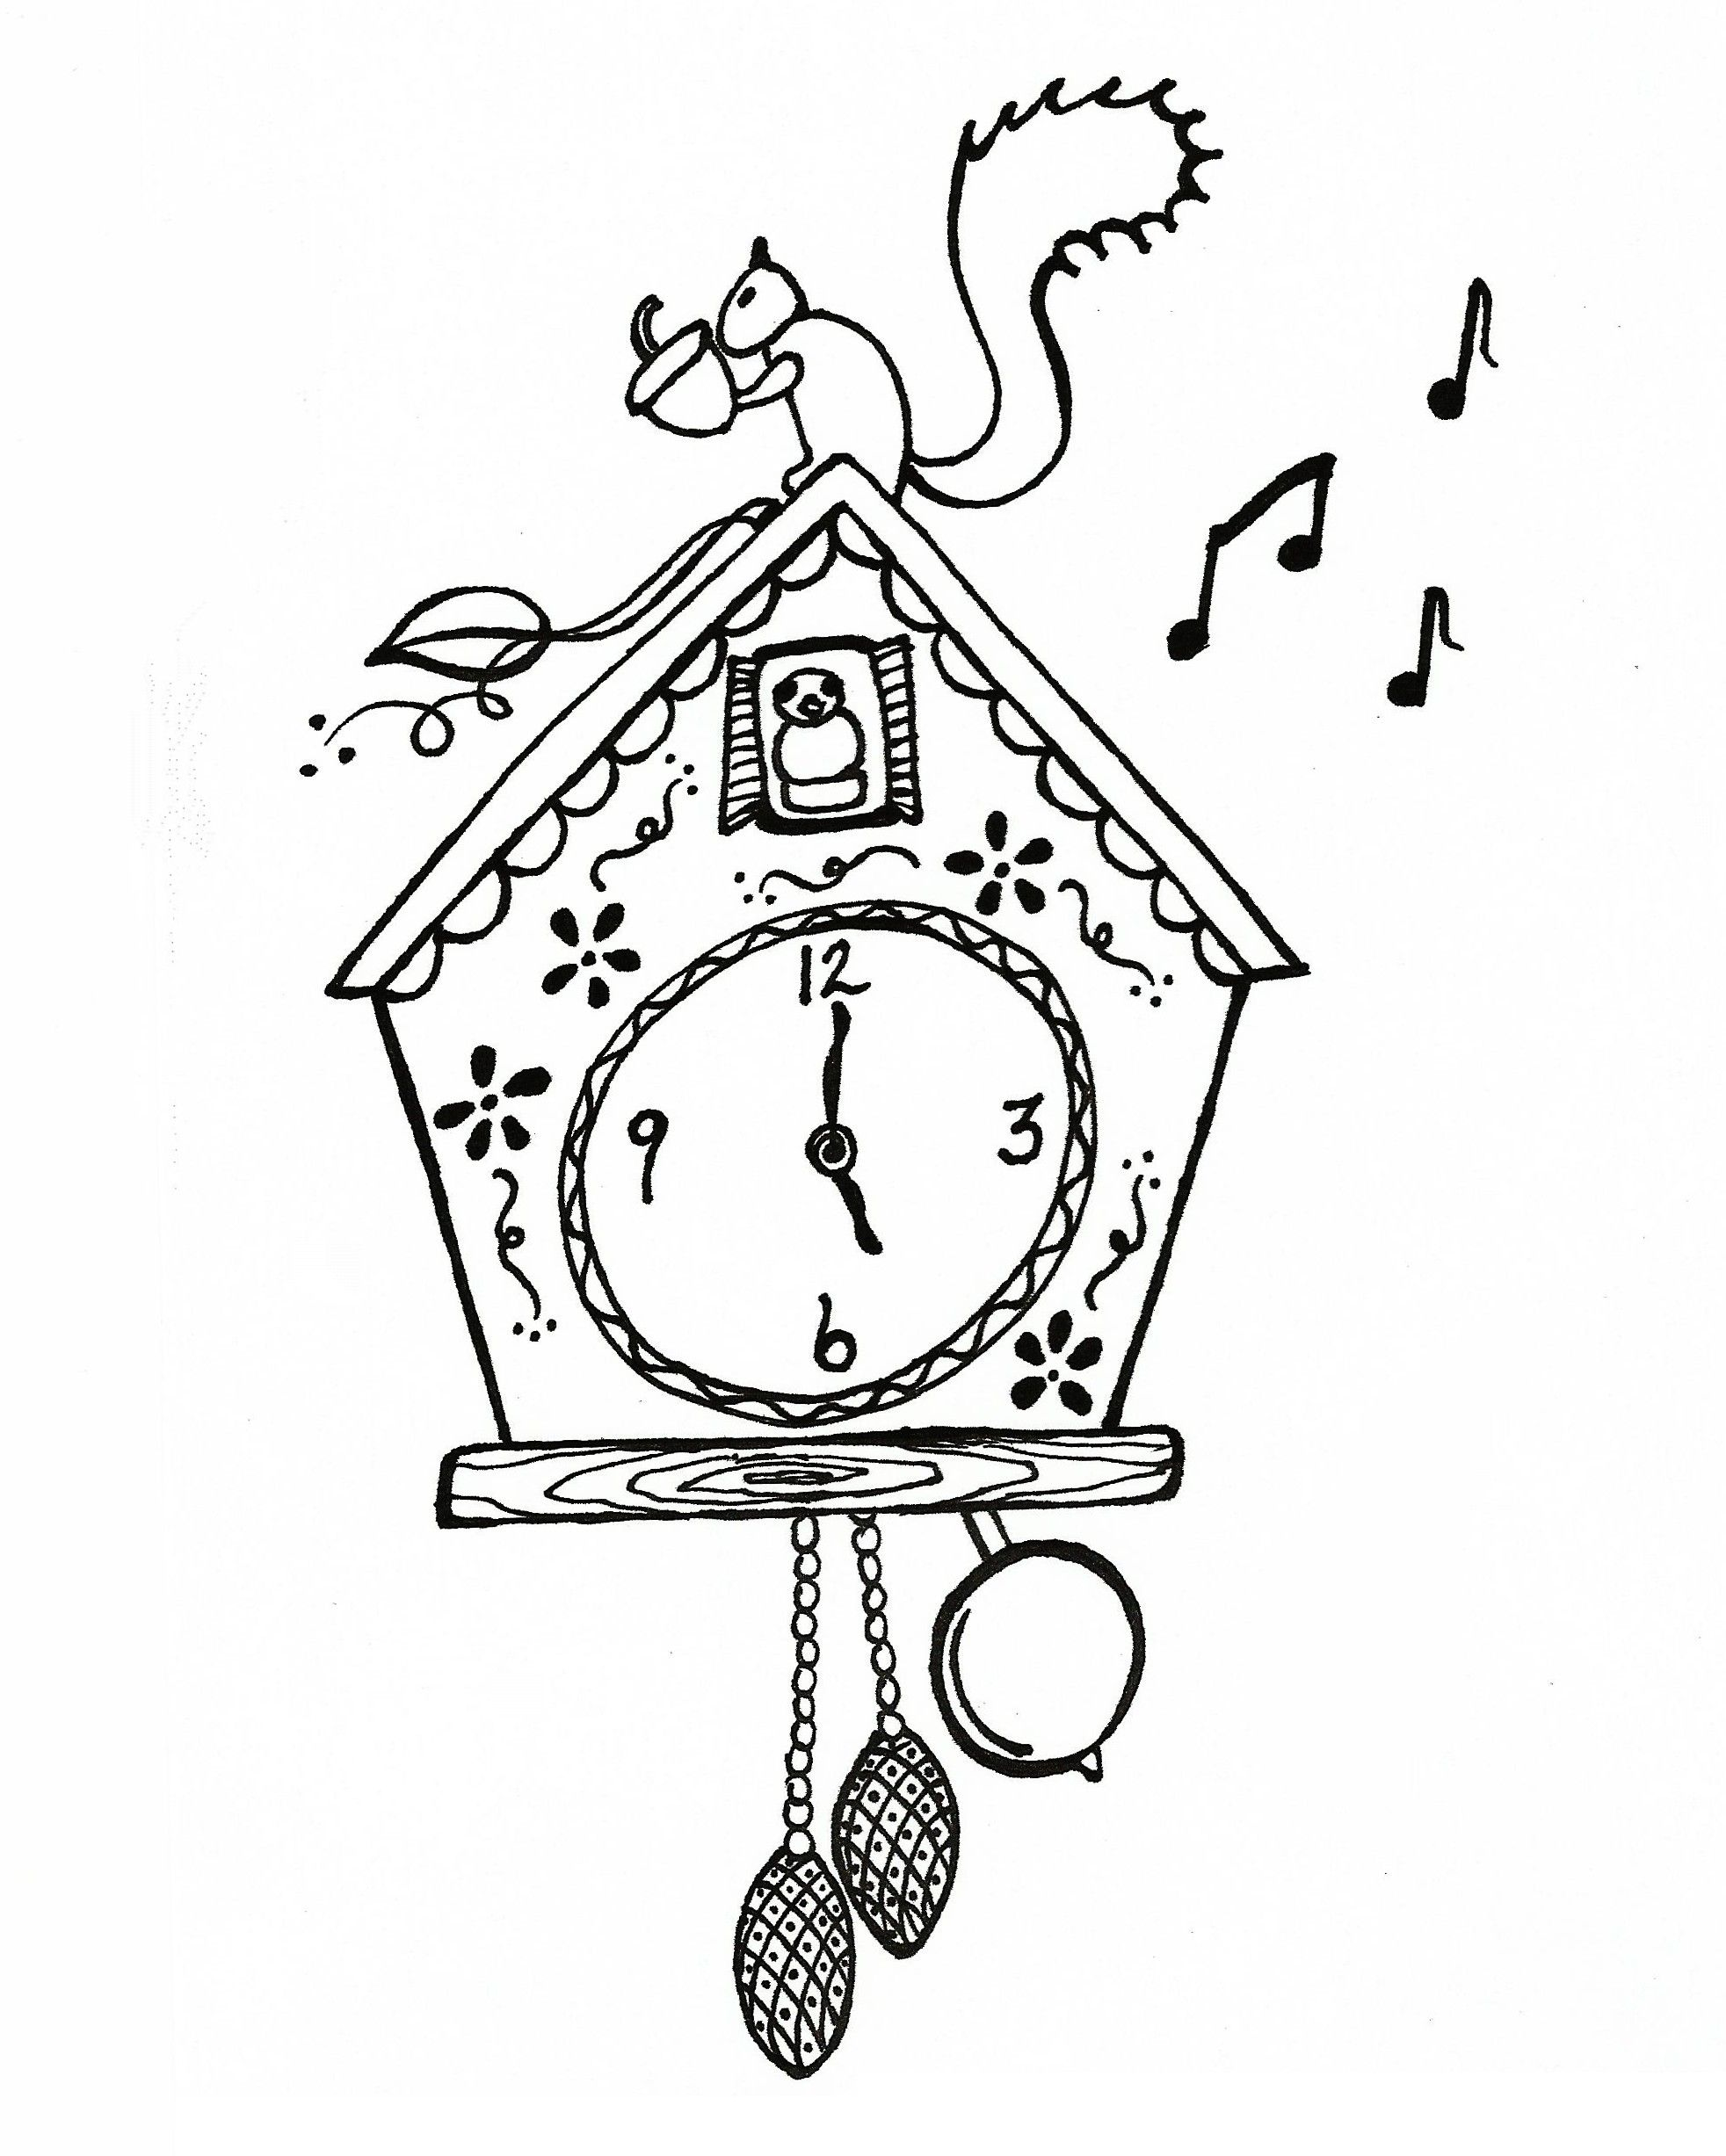 Cuckoo Clock Print Color Enjoy Xoxo Christen Noelle